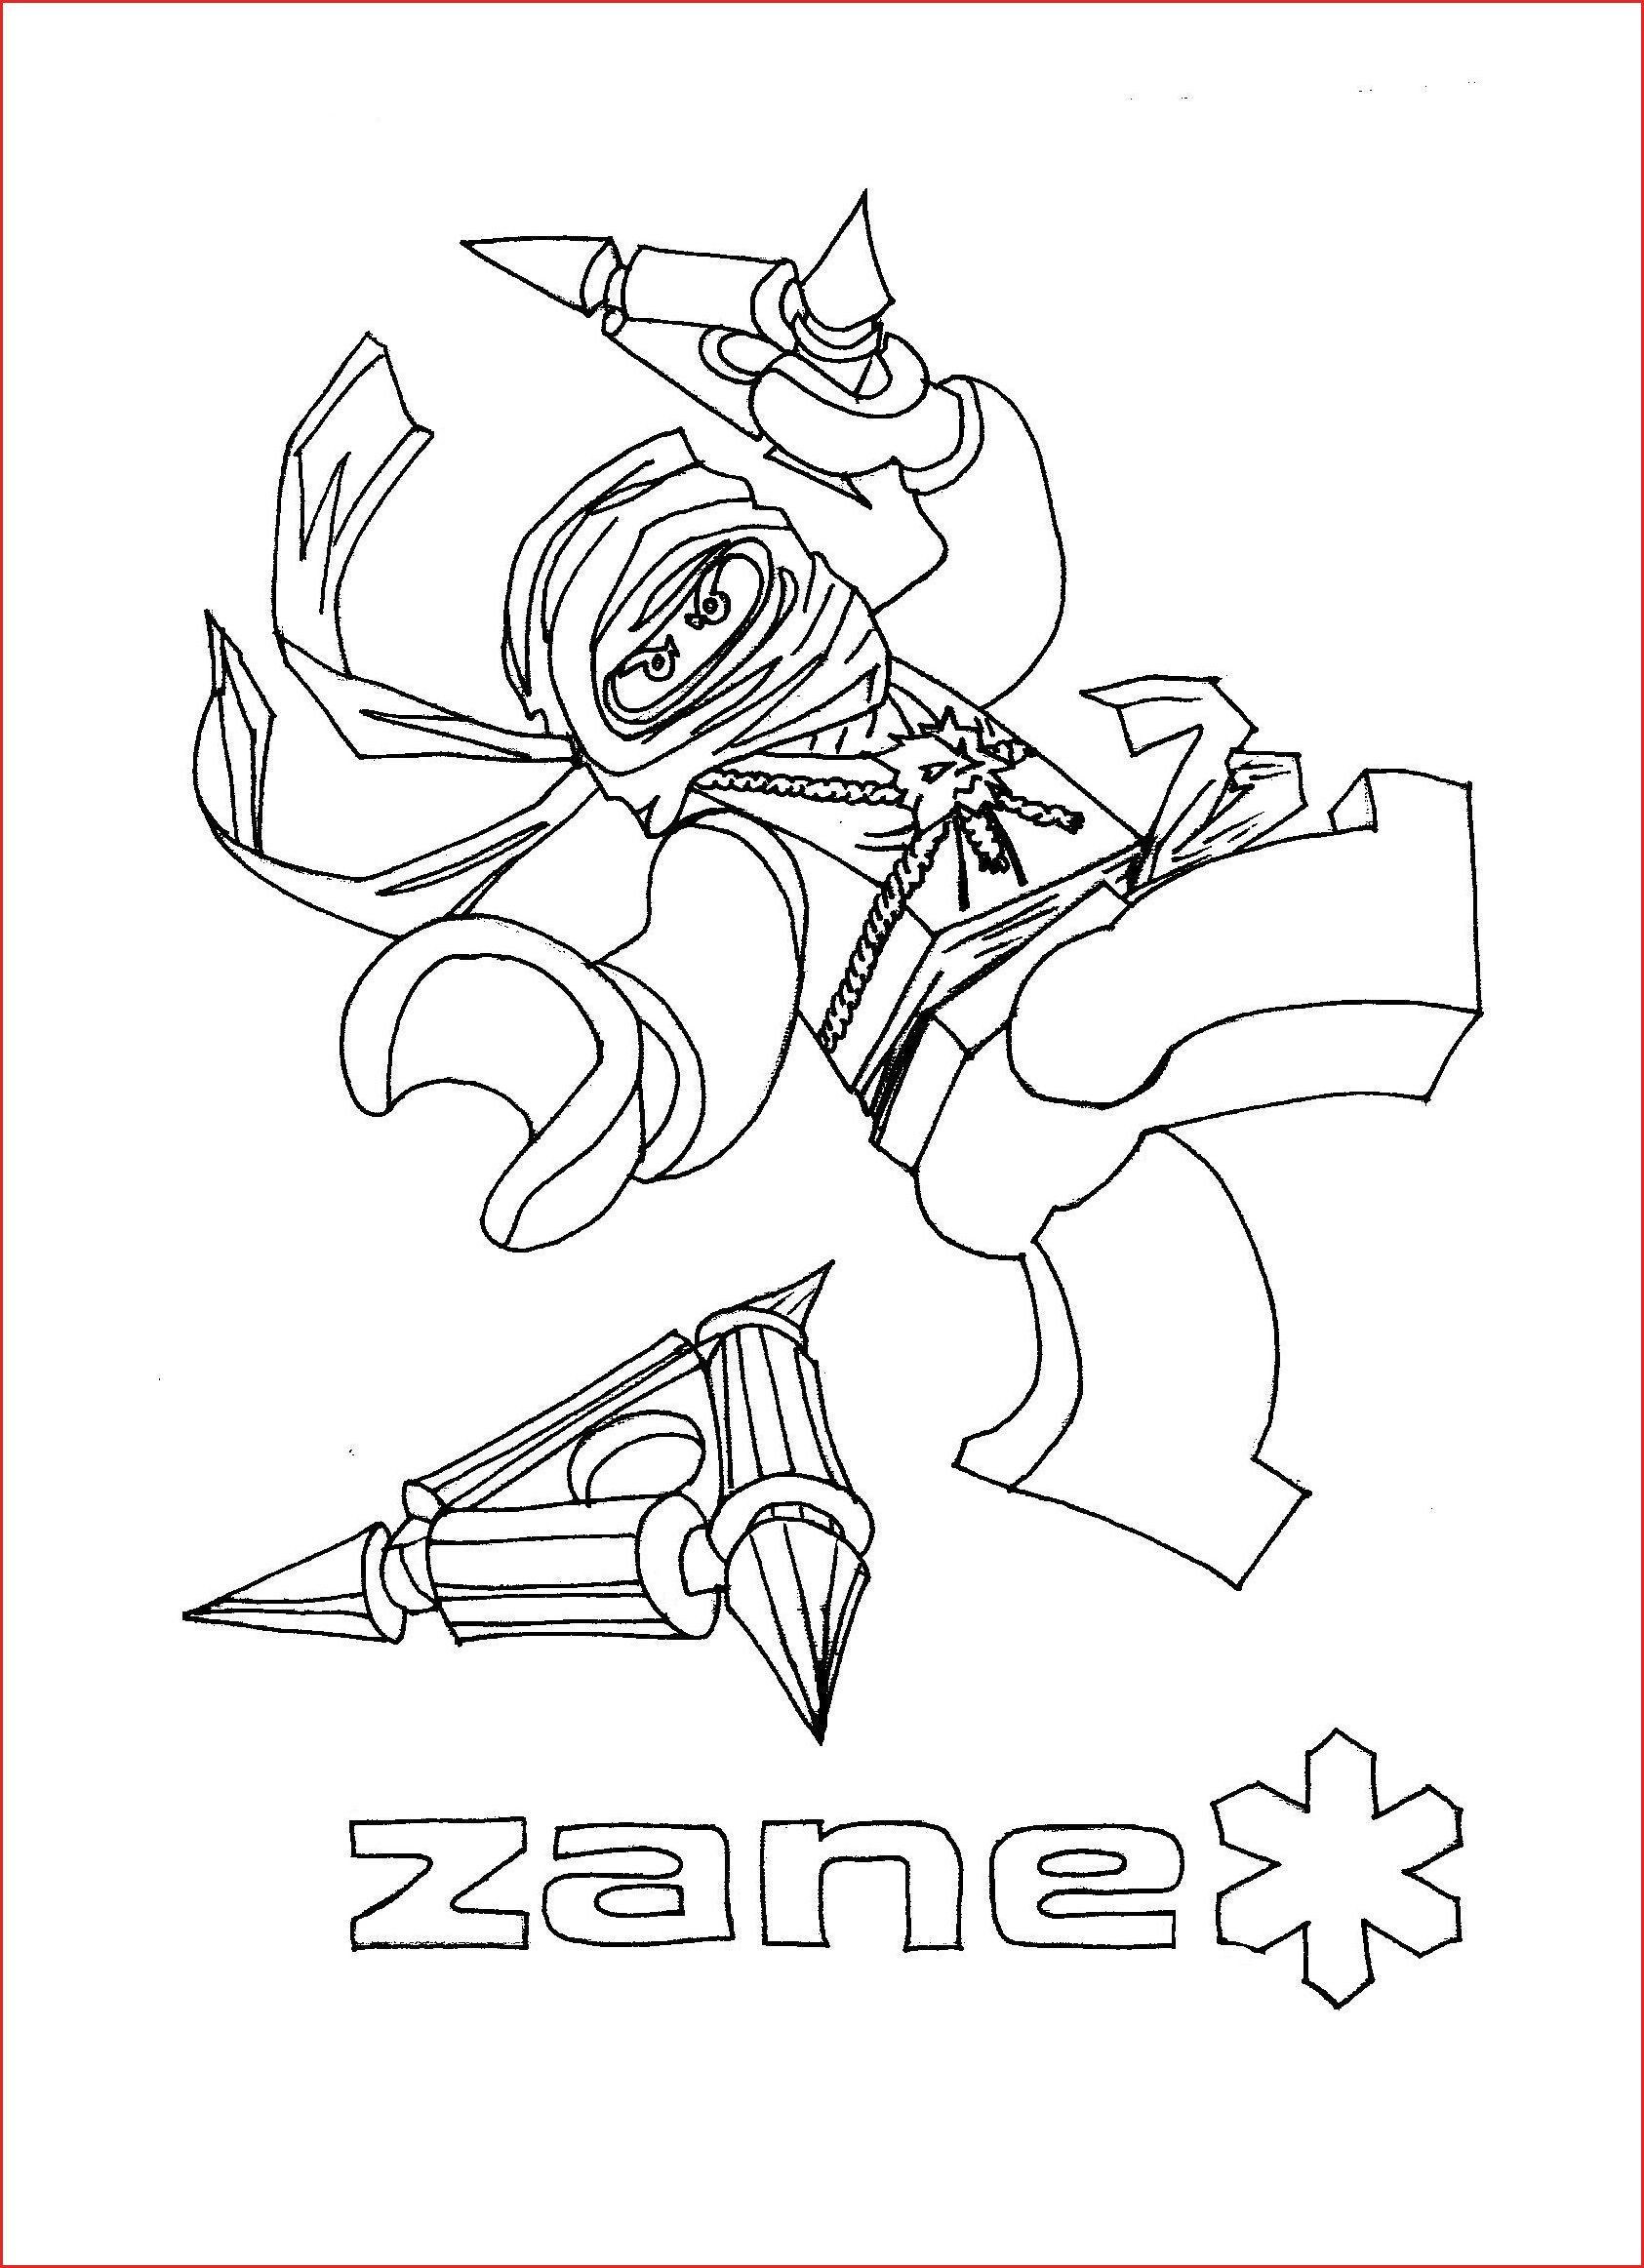 Lego Ninjago Coloring Pages Elegant Lego Coloring Pages Coloring Pages Ninjago Zane And The Ninjago Coloring Pages Valentine Coloring Pages Bat Coloring Pages